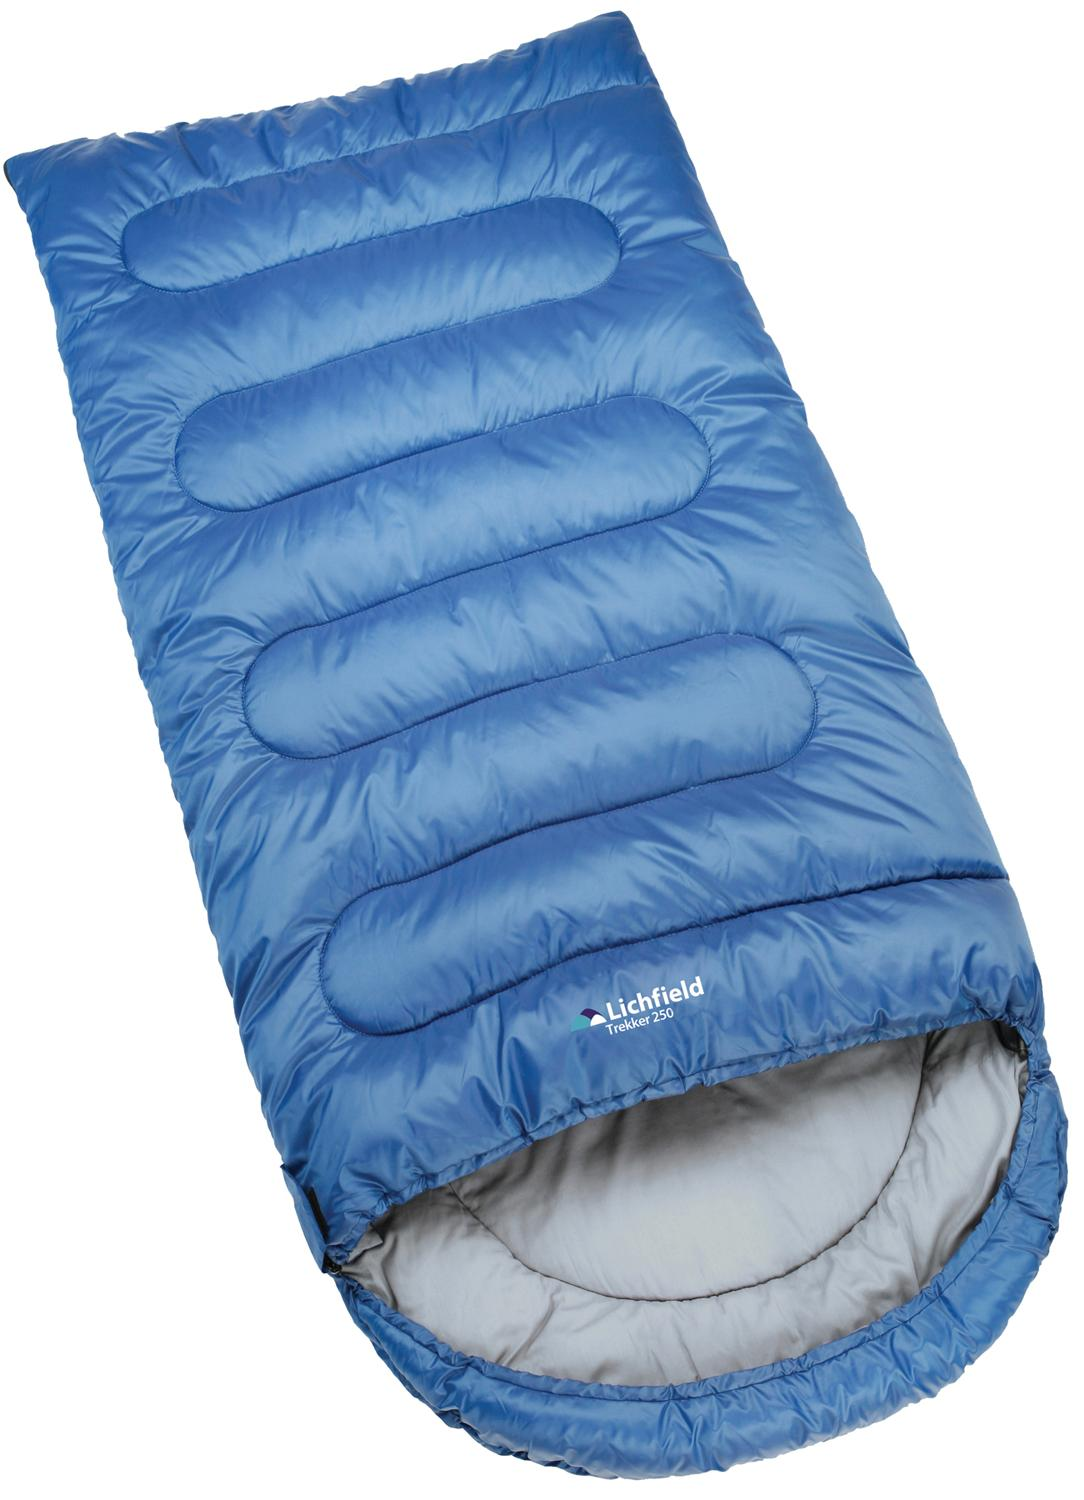 Lichfield Trekker 250 Sleeping Bag